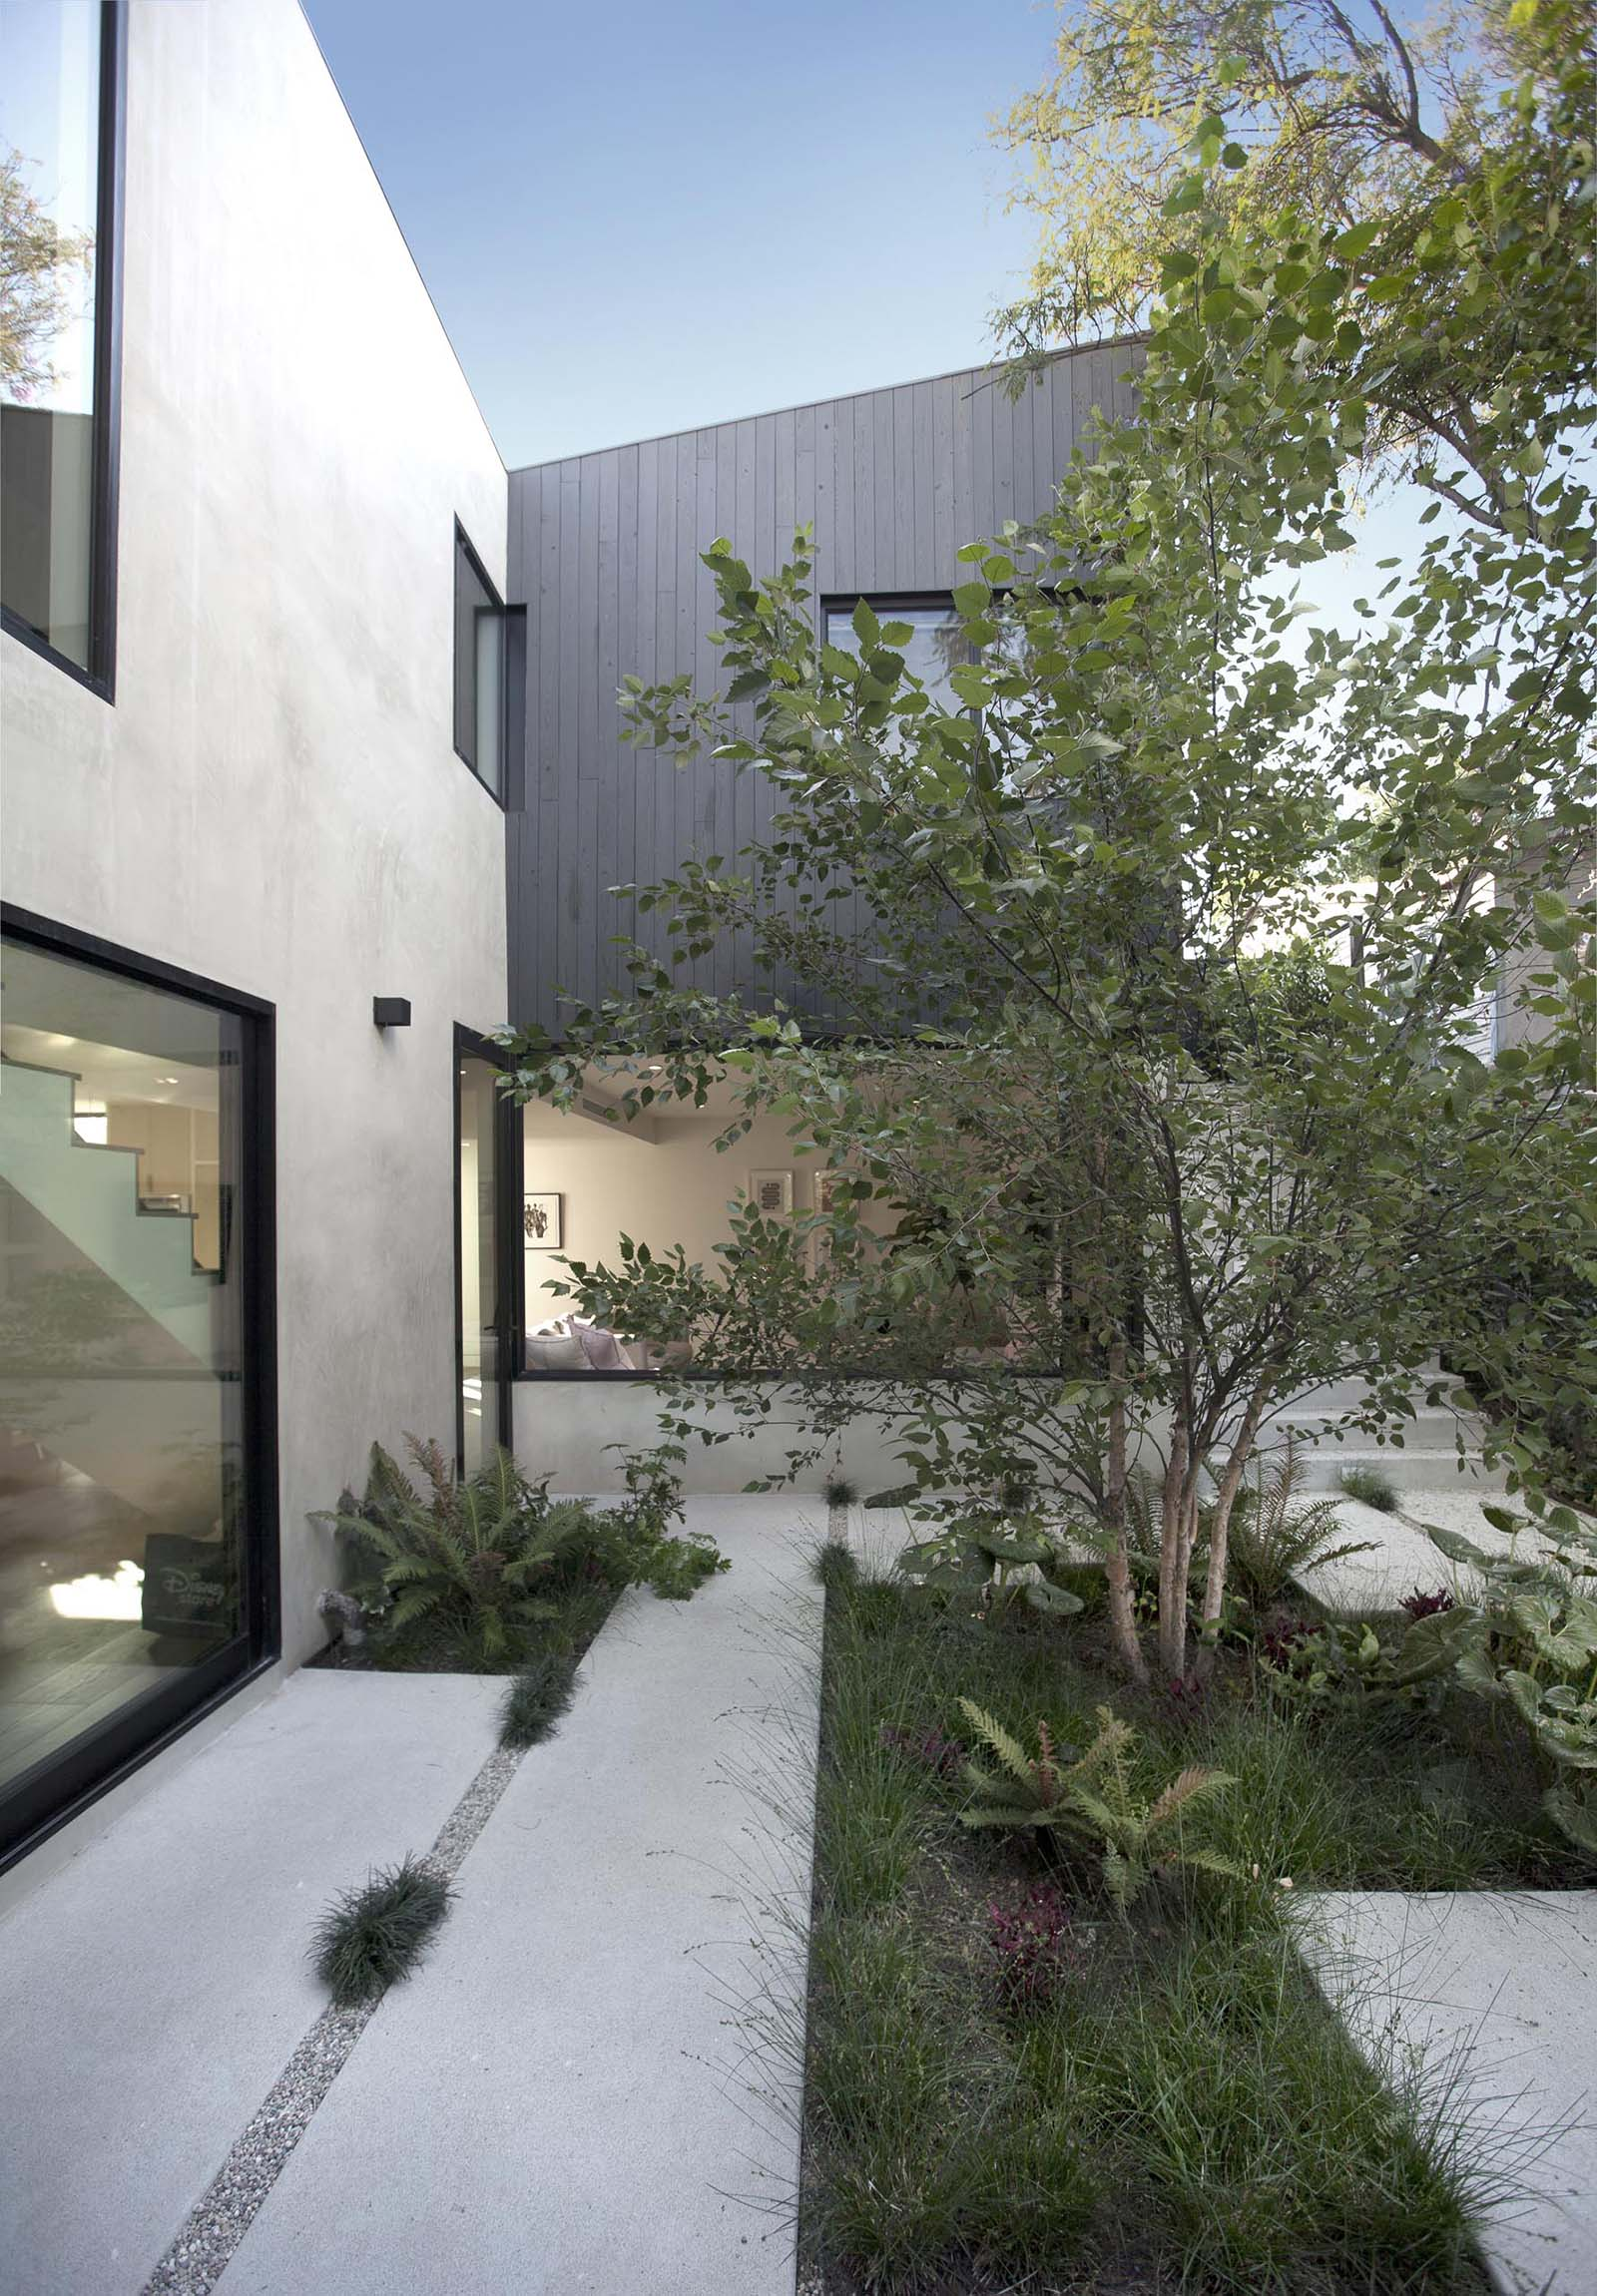 A modern courtyard with concrete pavers, pebbles, grasses, and a large tree.